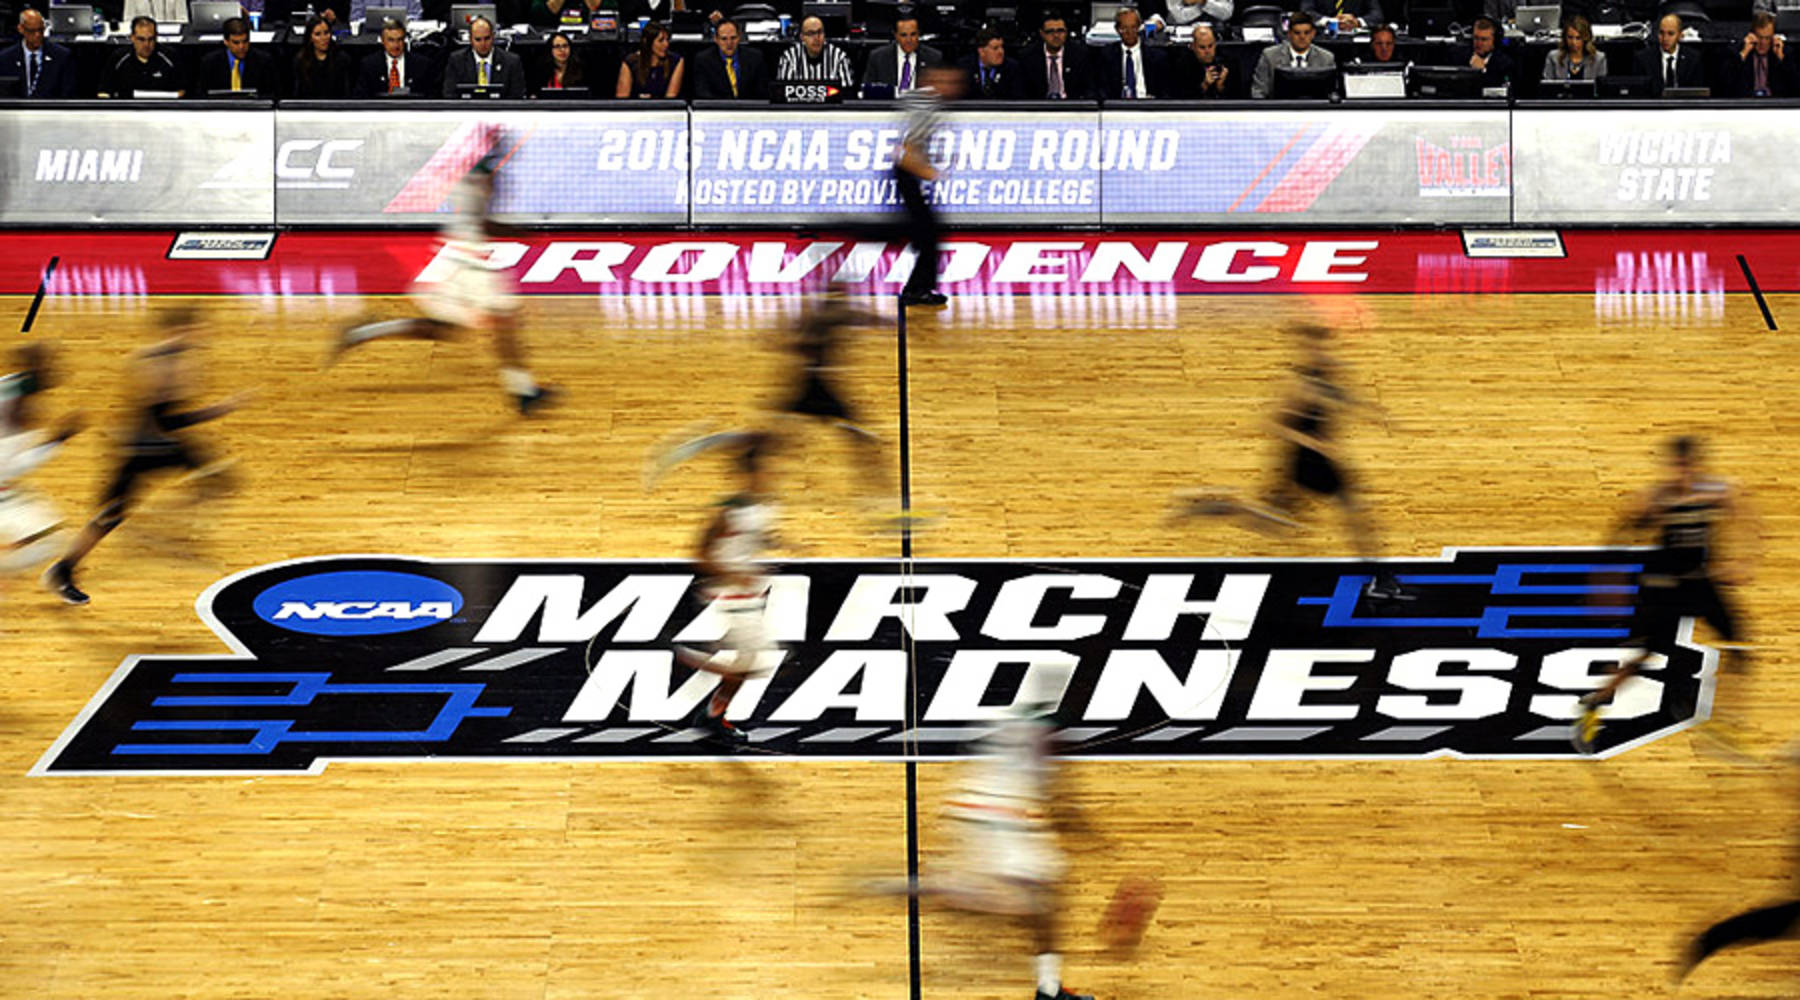 March Madness means lots of illegal sports betting - Marketplace